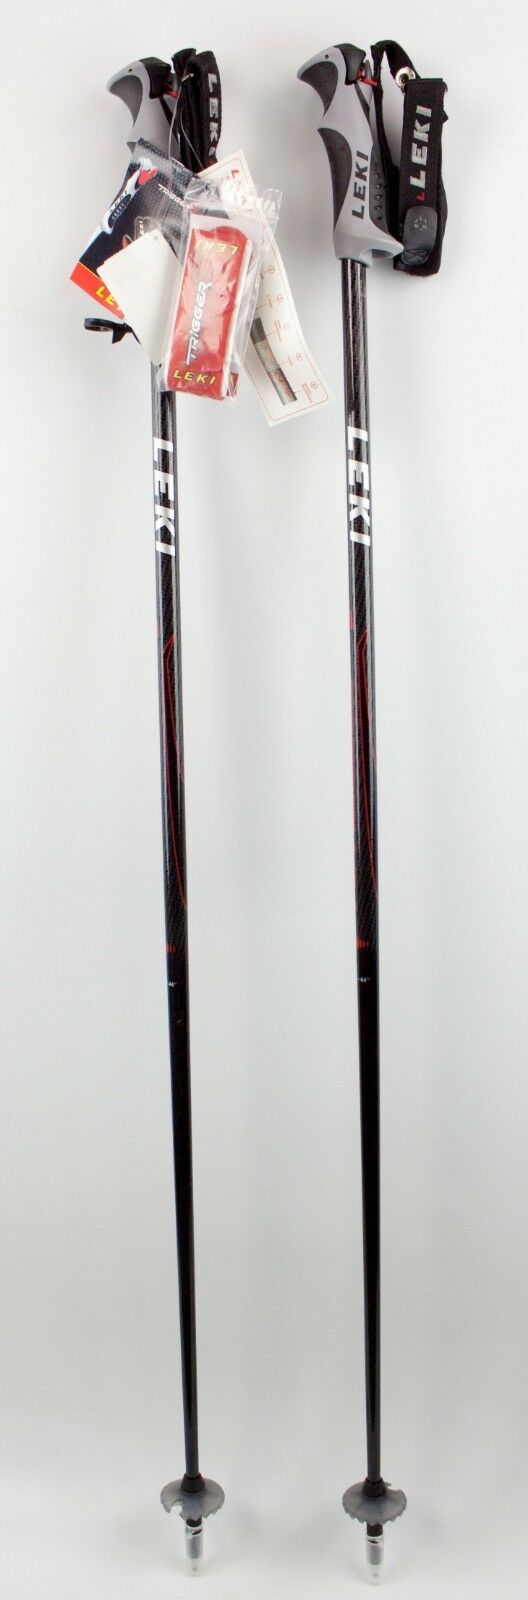 NEW  200 LEKI Carbon Fiber 10S Trigger S Ski  Poles 110CM 44  Downhill Skiing  with cheap price to get top brand